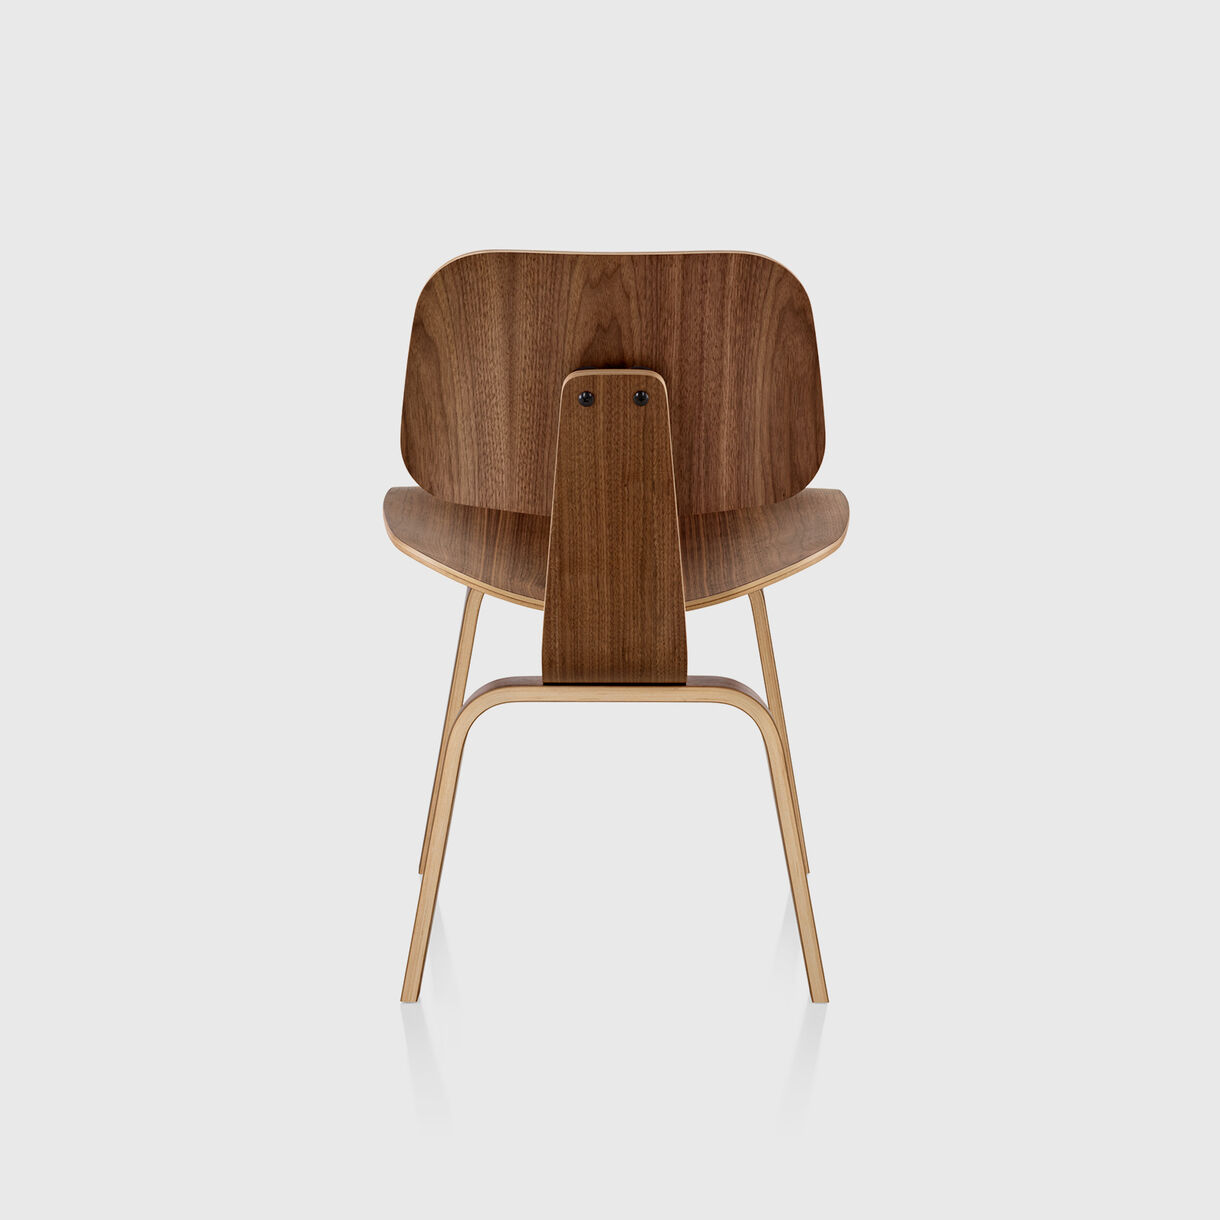 Eames Moulded Plywood Dining Chair, Walnut